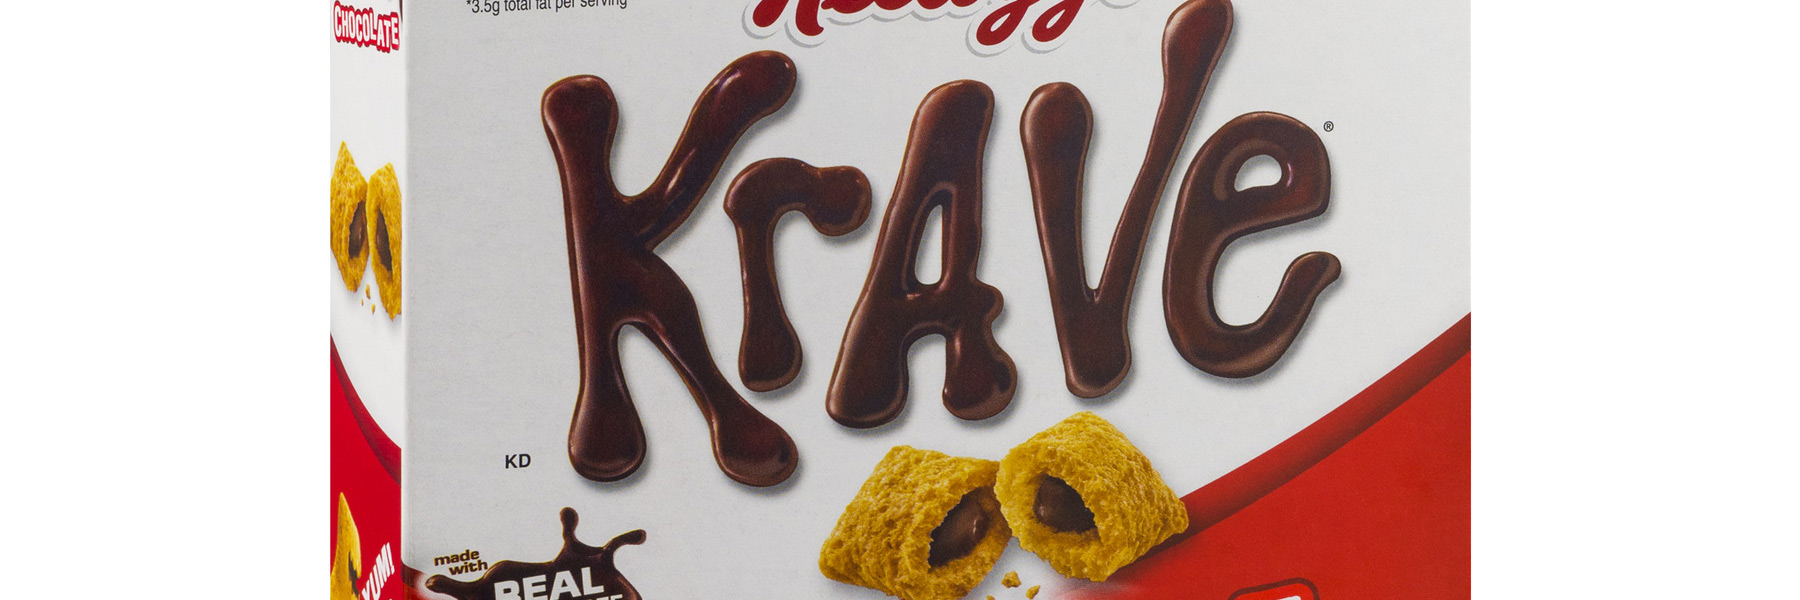 Box of Kellogg's Krave cereal